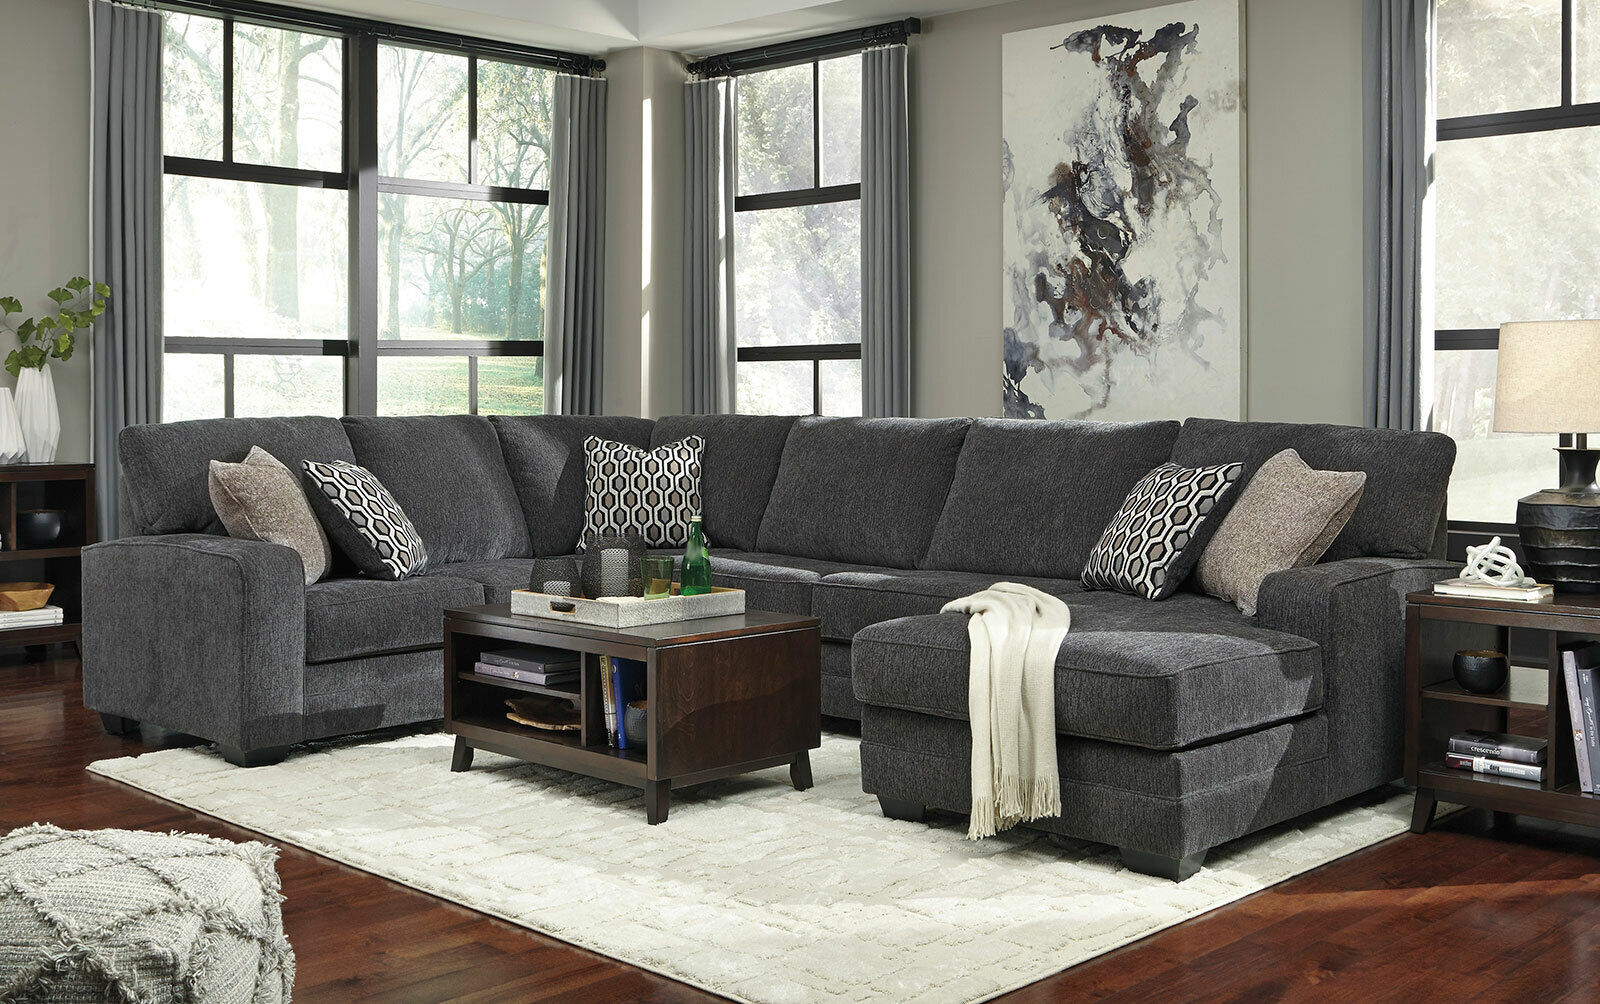 new modern sectional living room dark gray chenille sofa couch chaise set ig0z